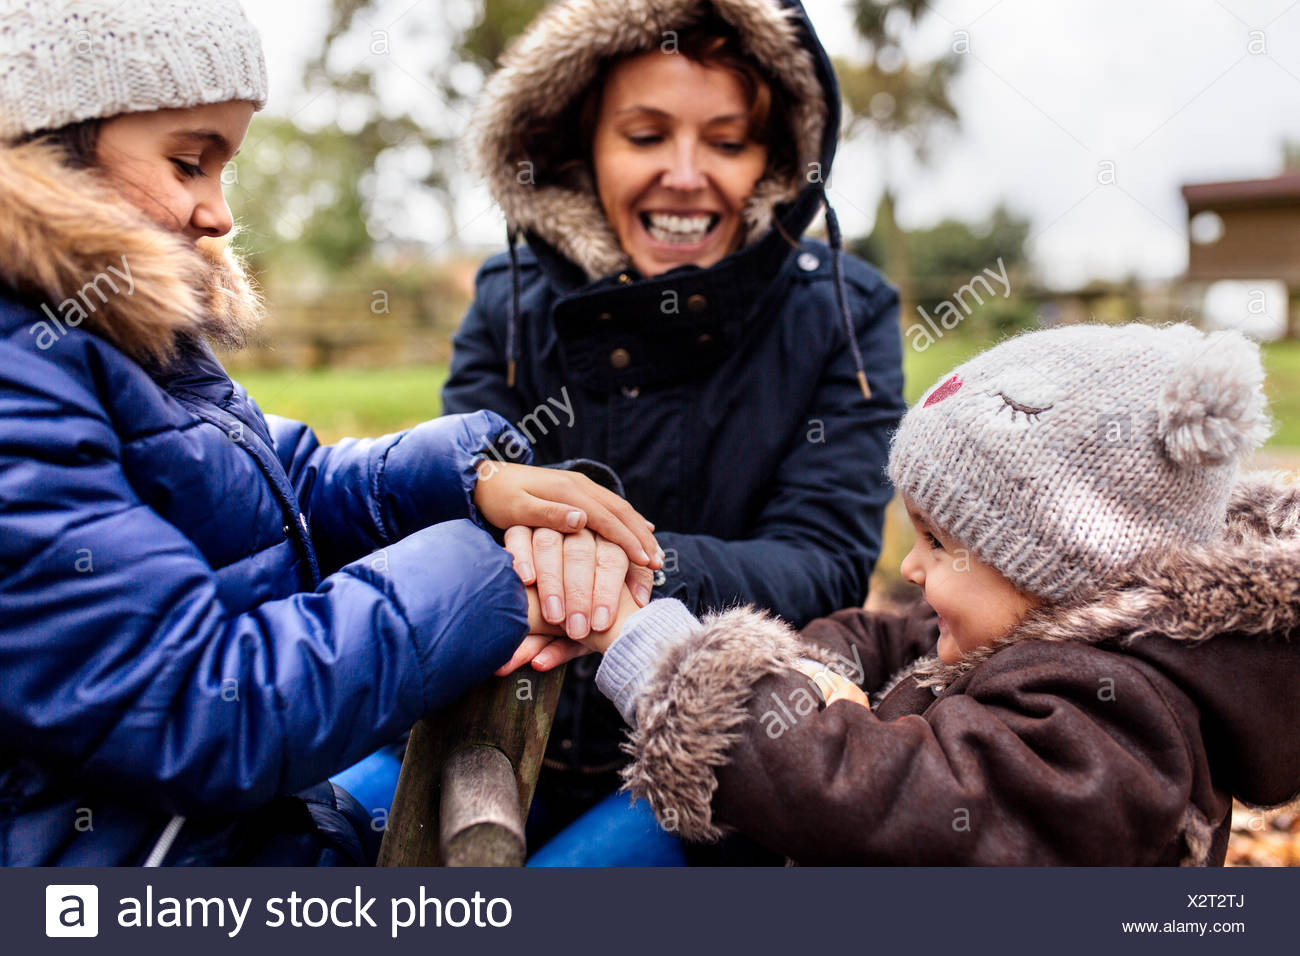 Two little sisters with her mother on a playground in autumn - Stock Image